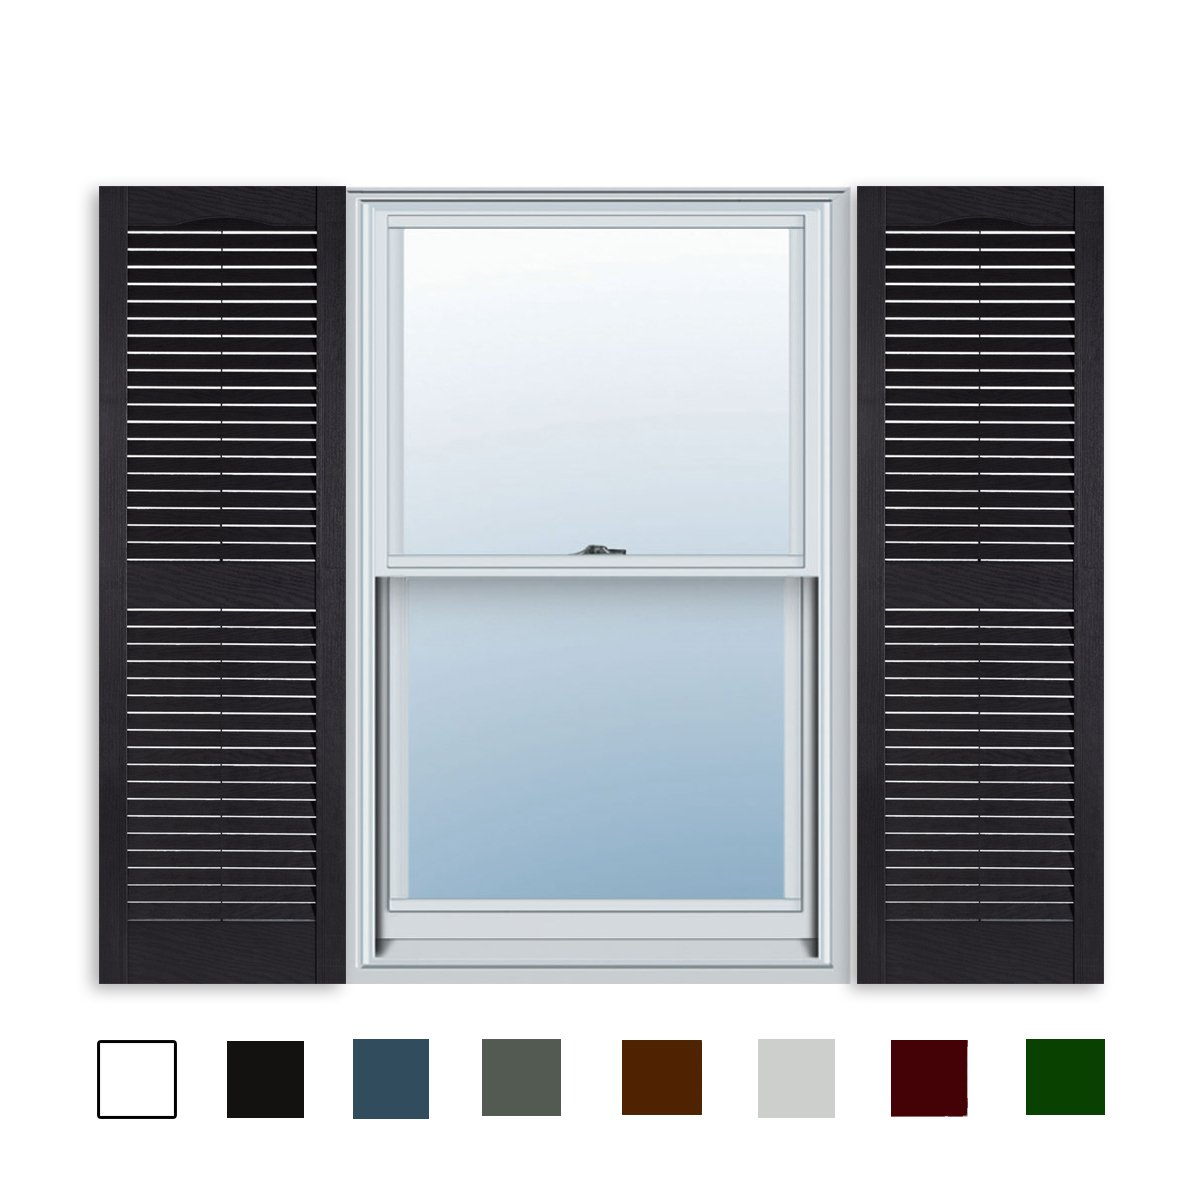 Best rated in window treatment shutters helpful customer reviews for Exterior louvered window shutters